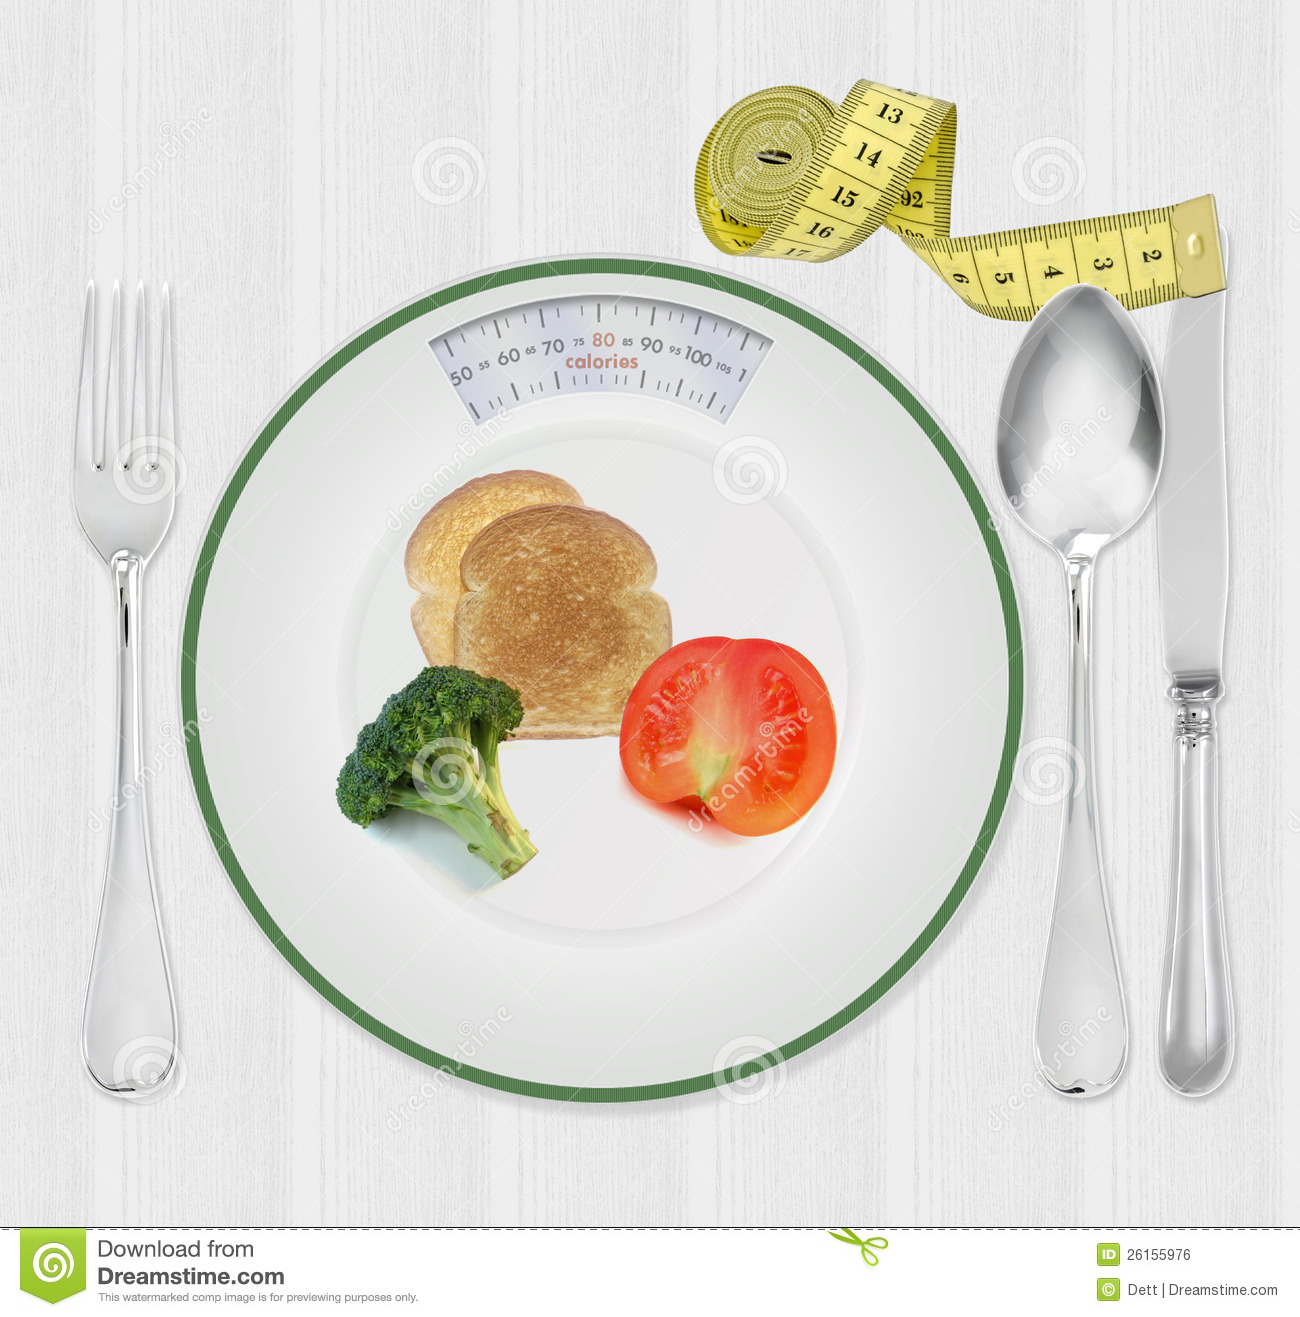 Calories Scale Plate With Diet Food Royalty Free Stock ...